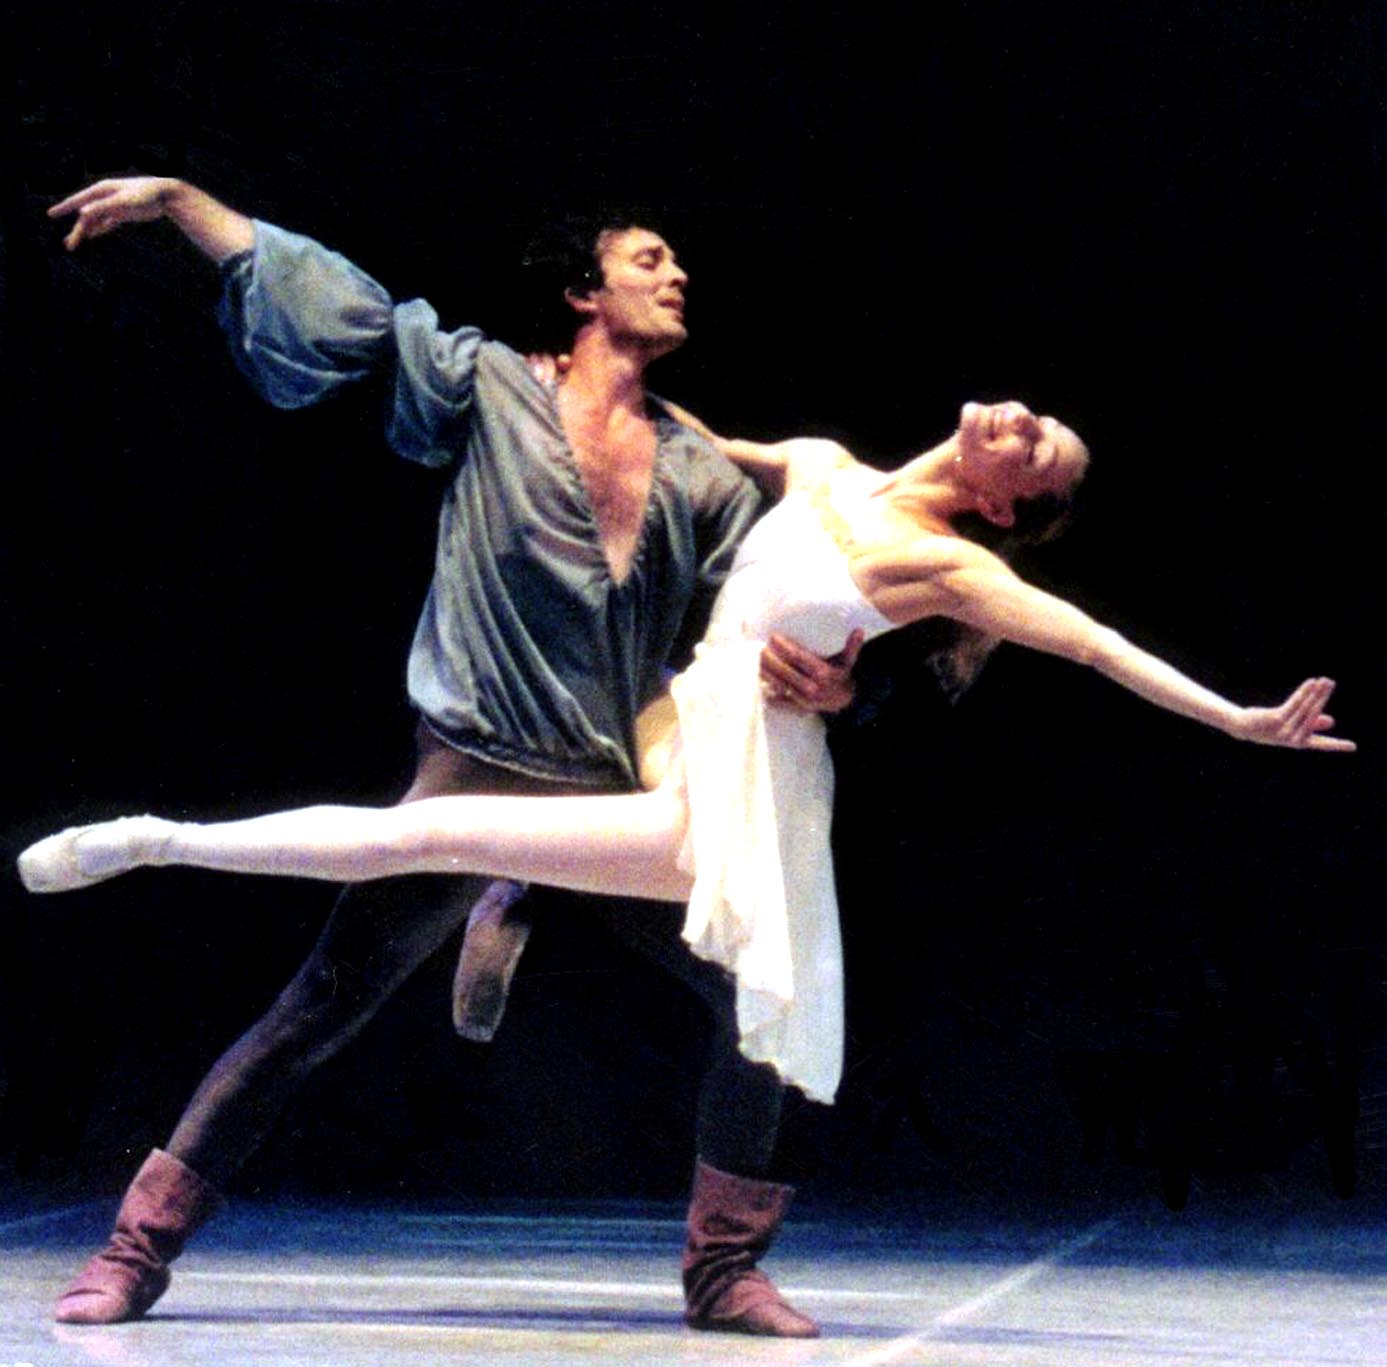 Two dancers portraying the roles of Romeo and Juliet